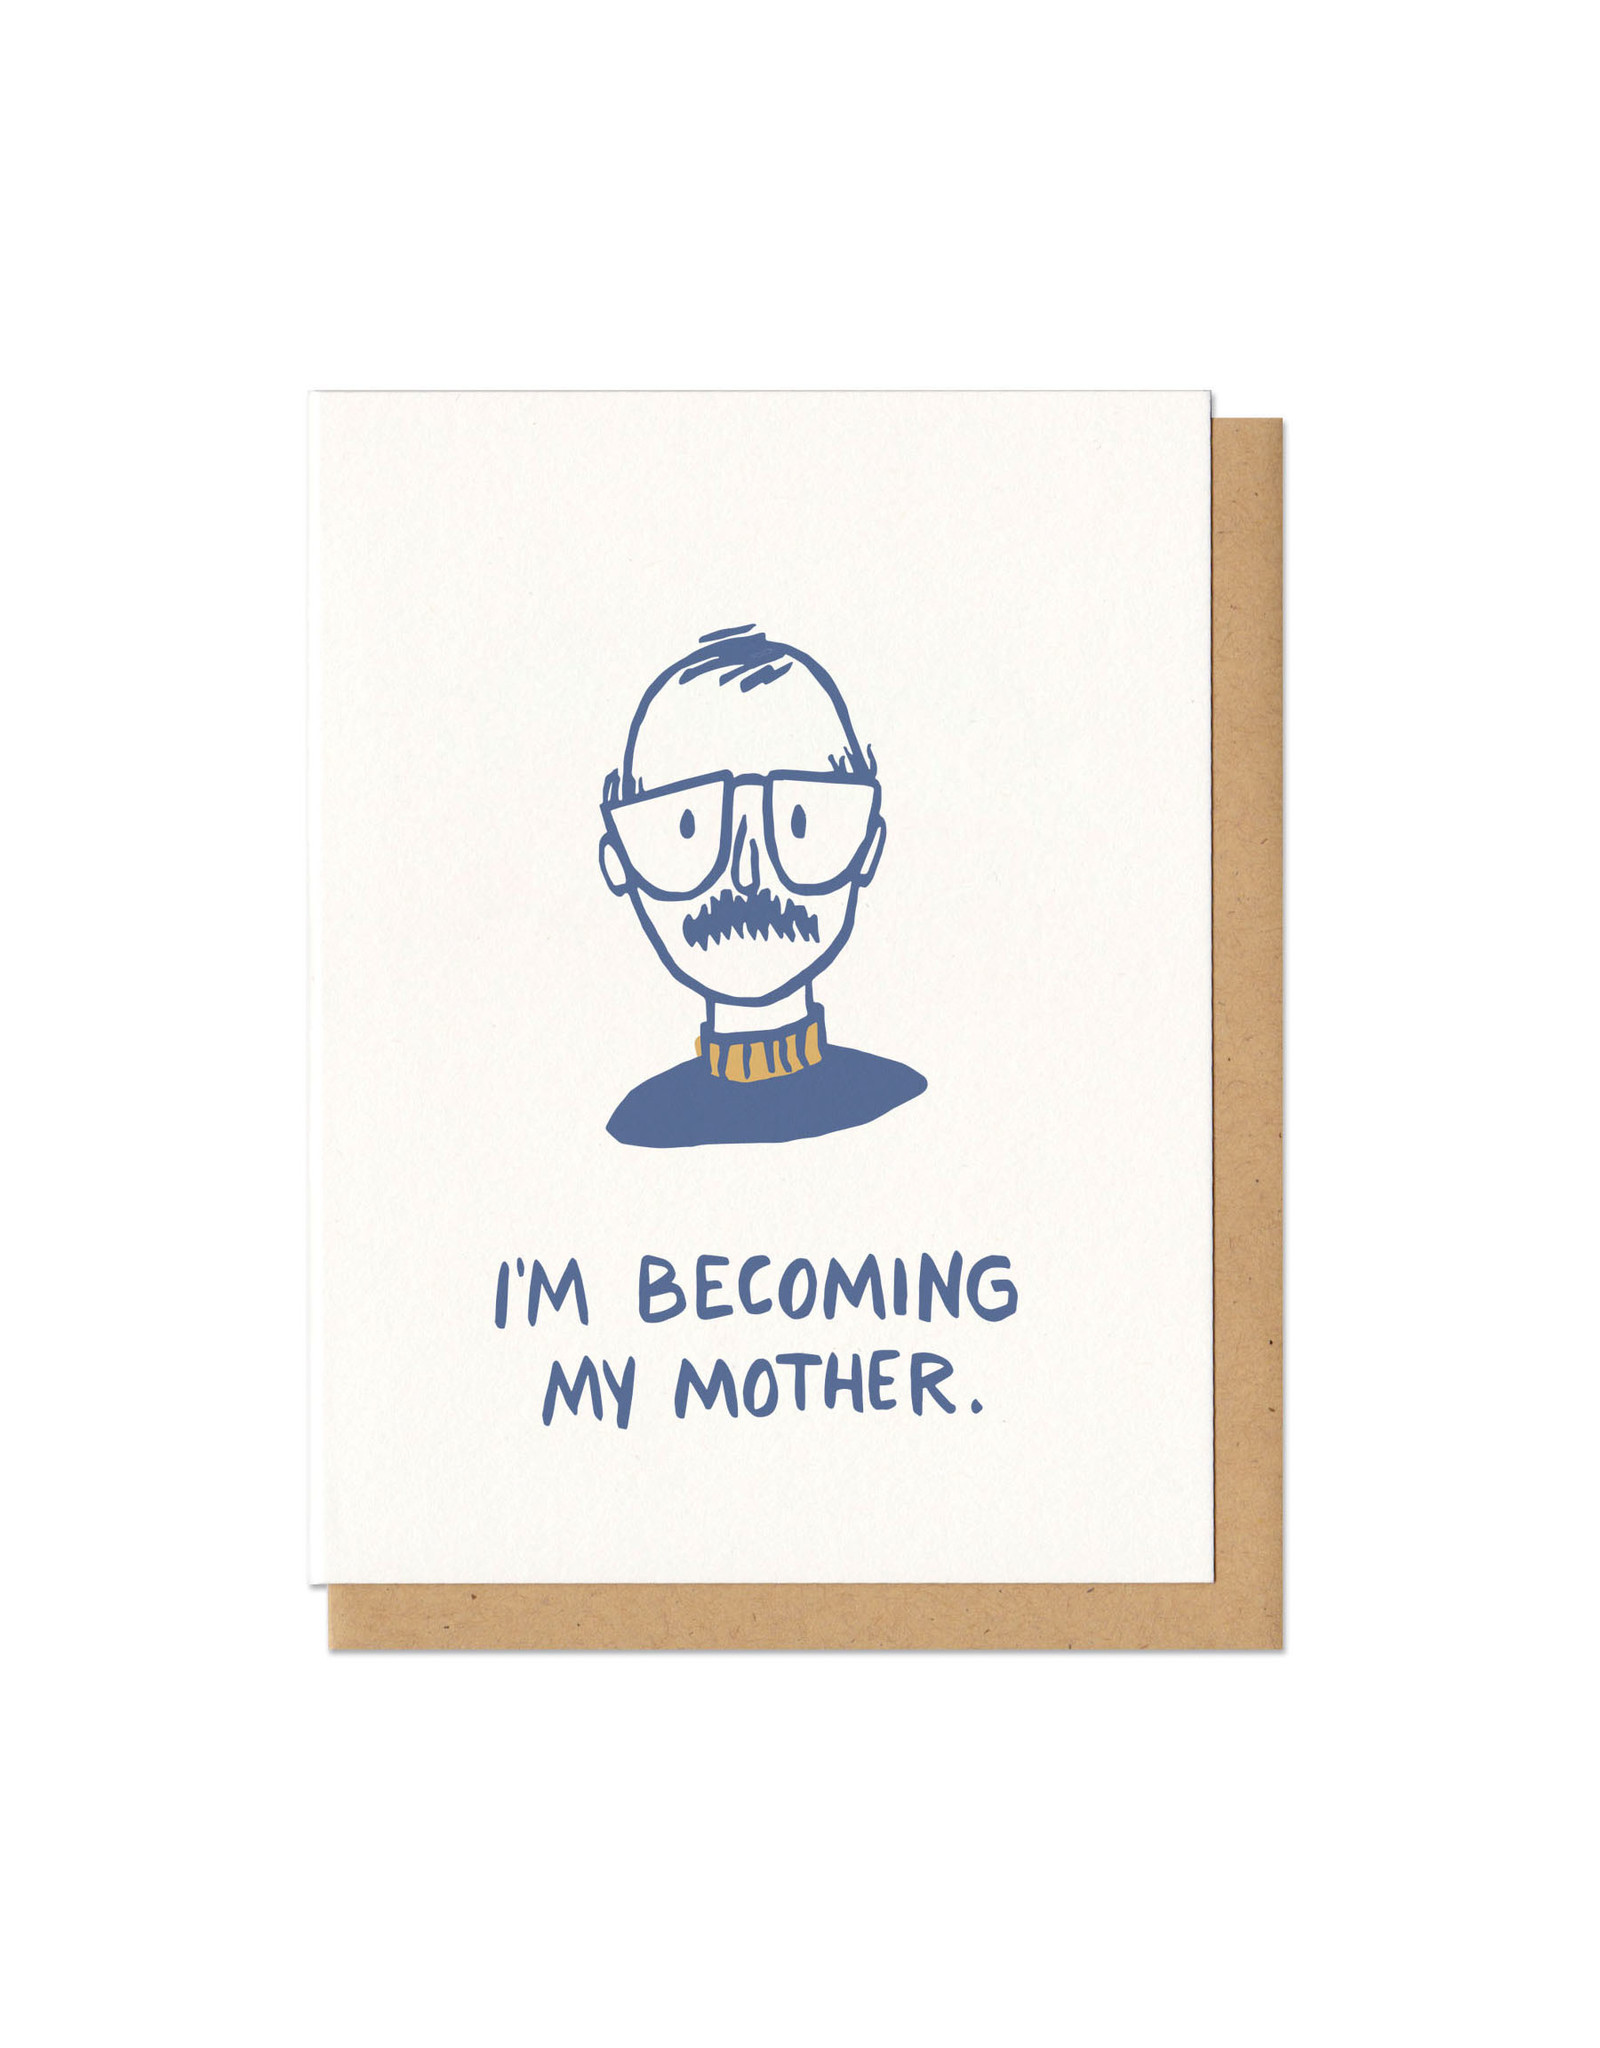 I'm Becoming My Mother 'Stache Greeting Card